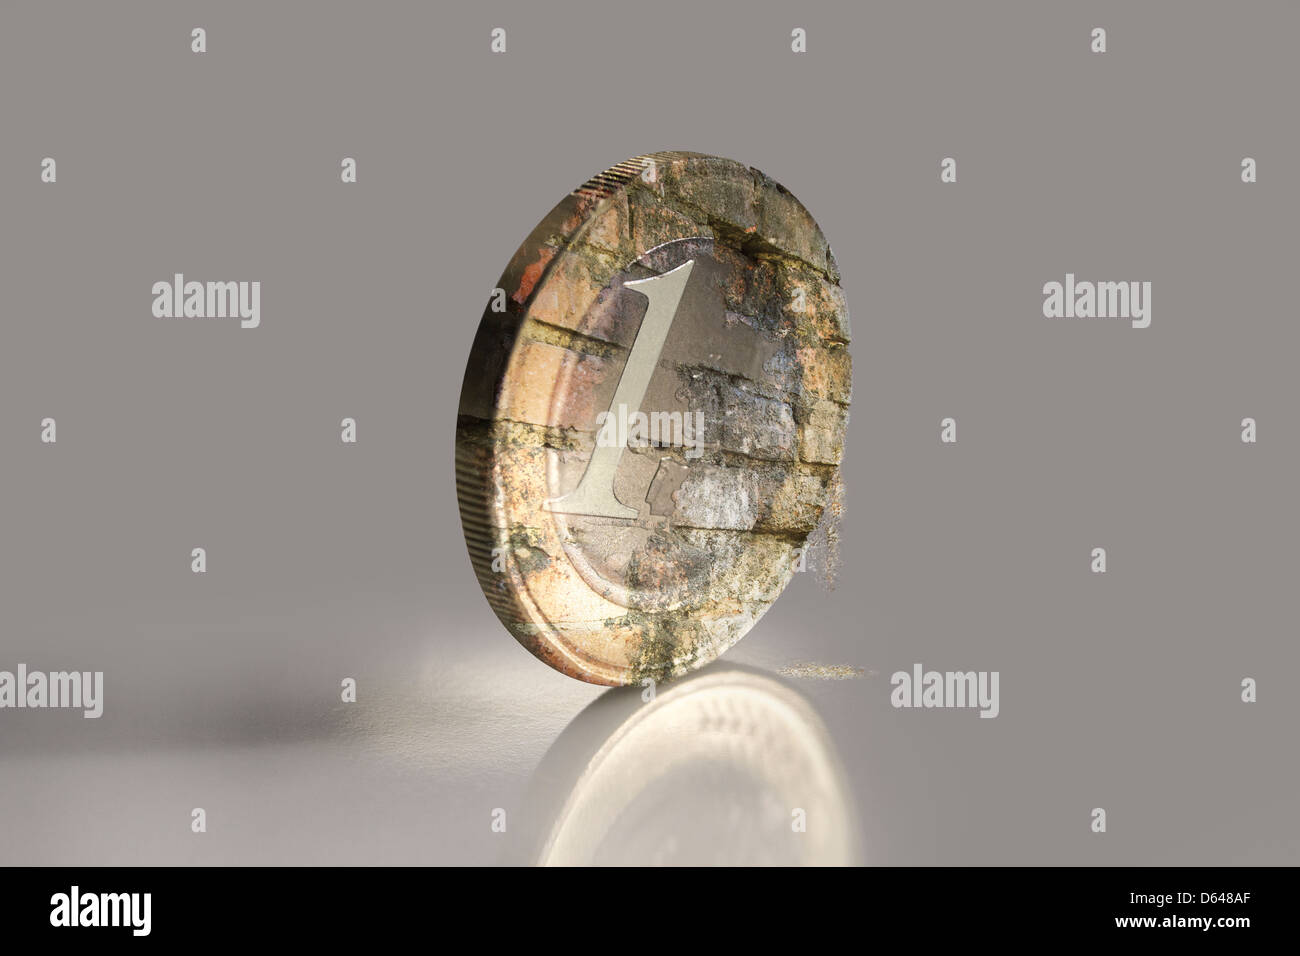 Crumbling Euro coin with its undamaged reflection - Stock Image